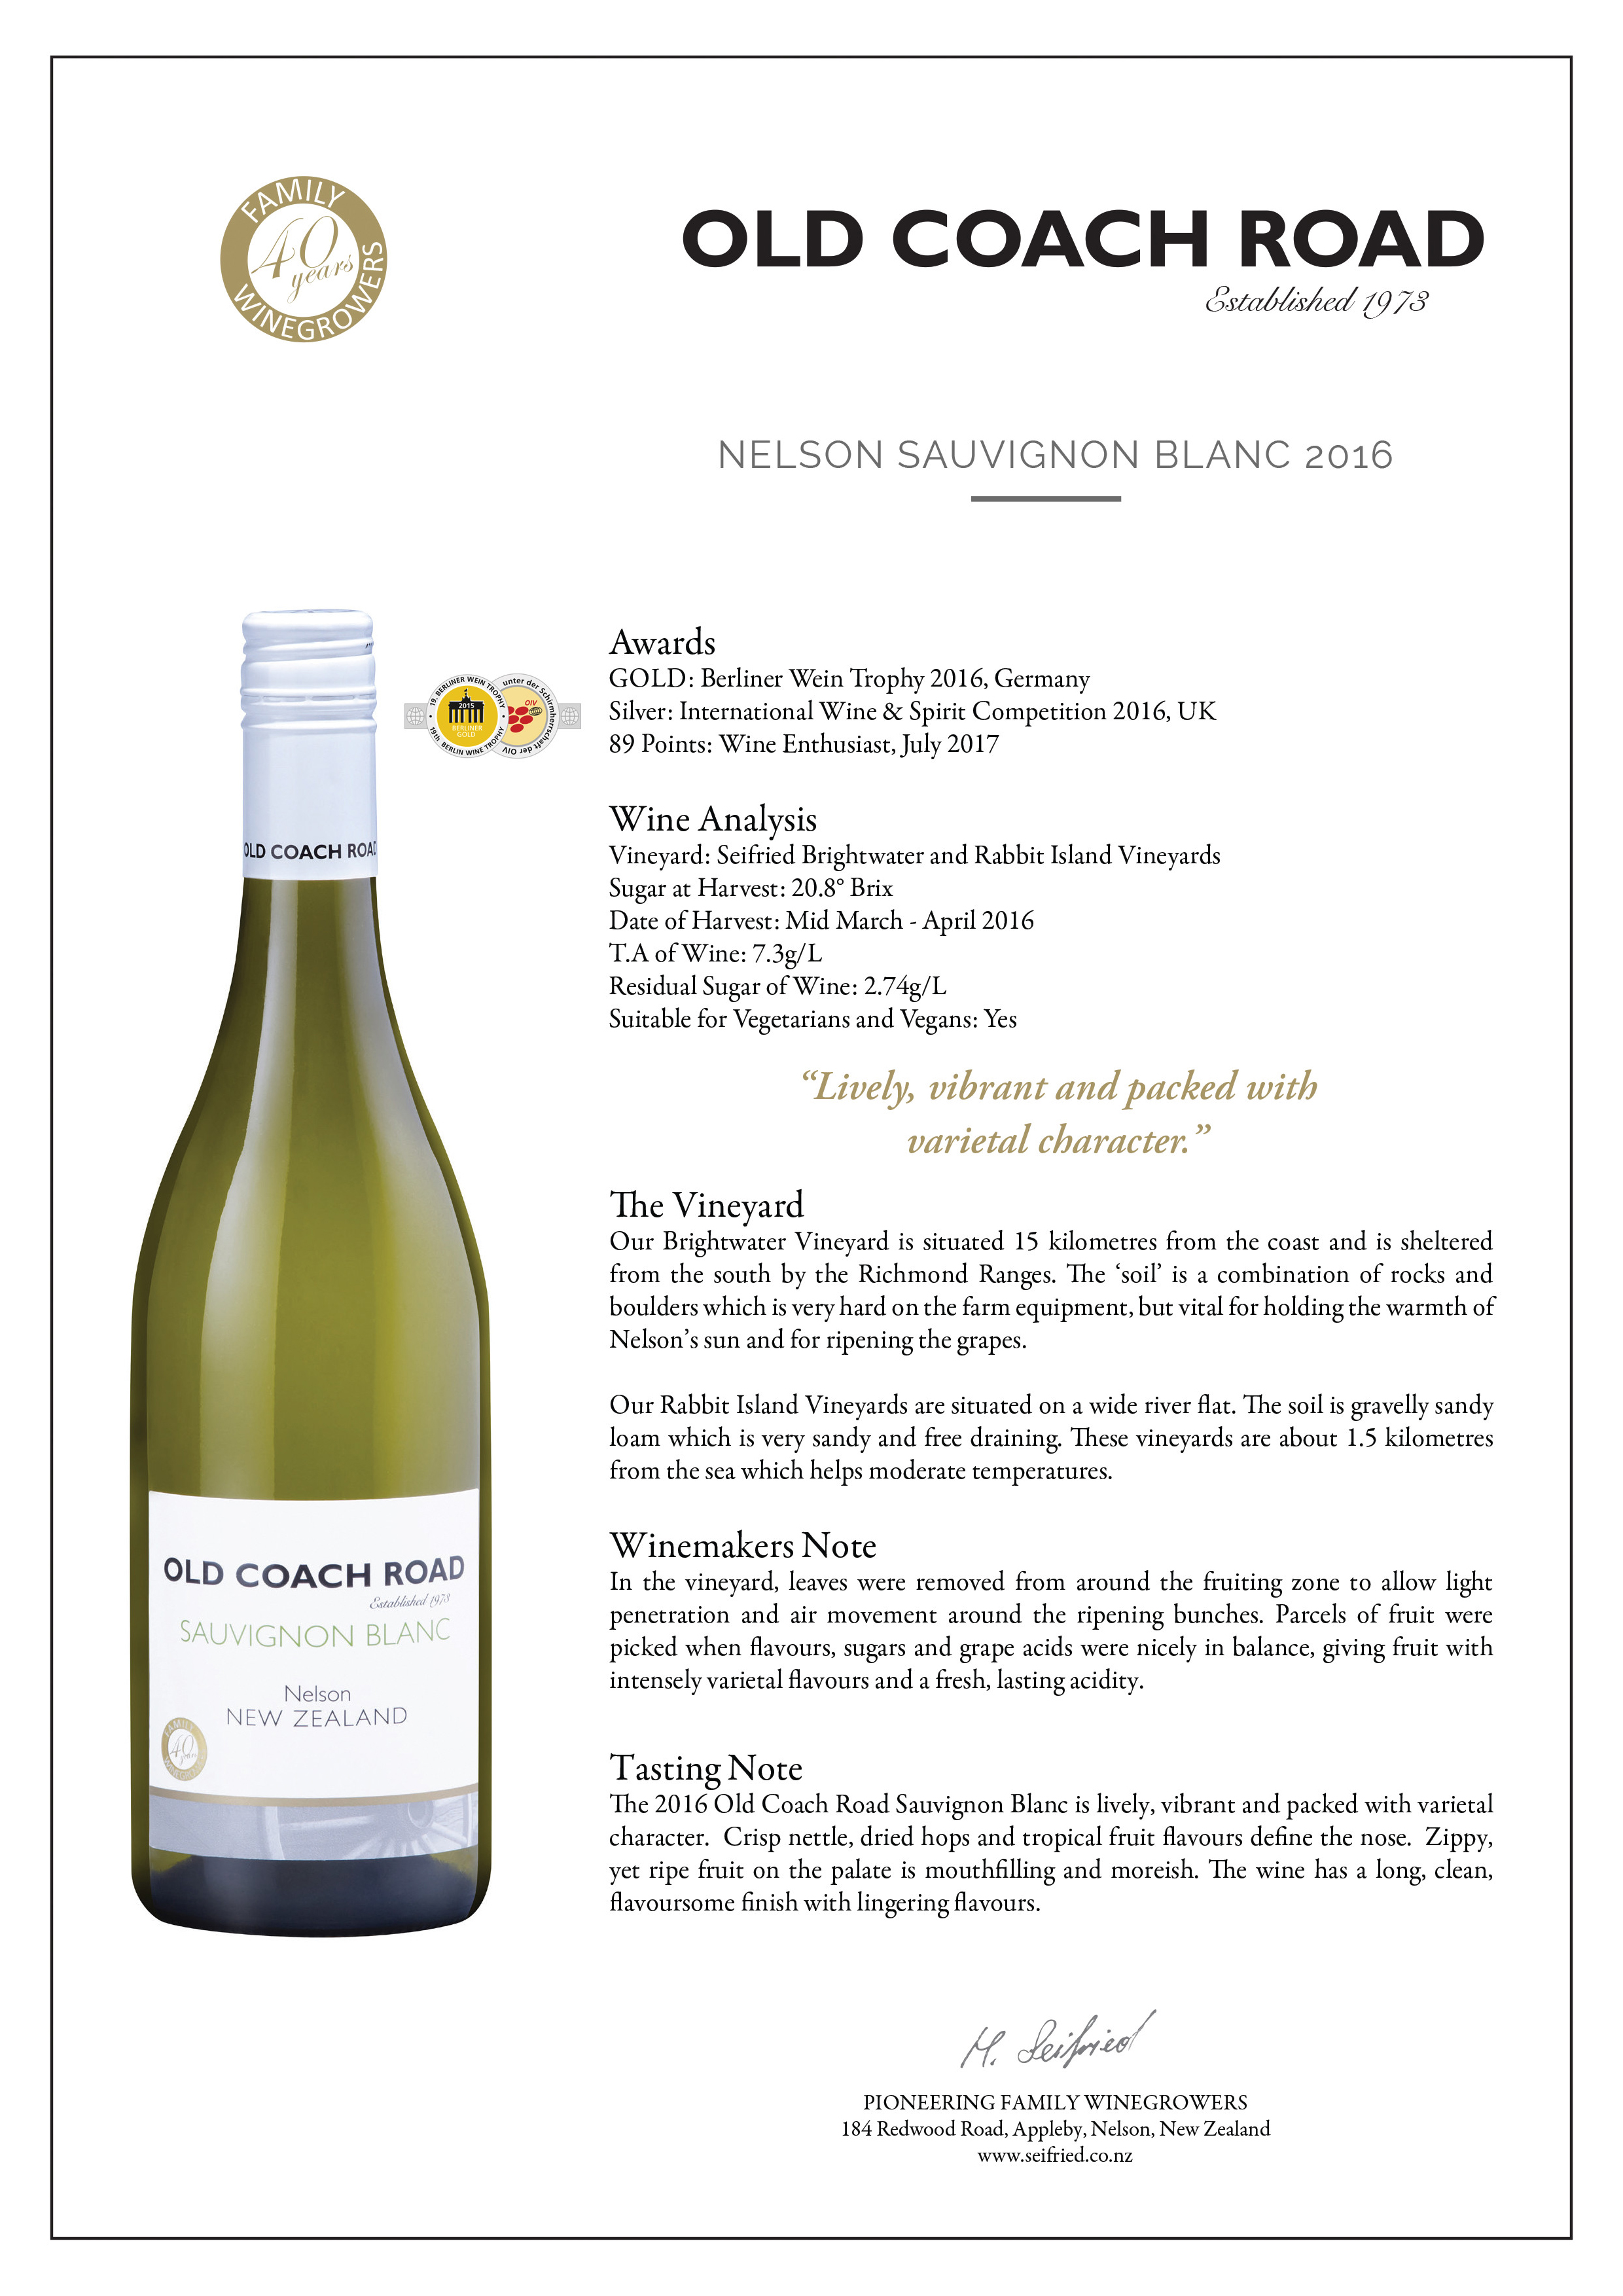 Old Couch Road Nelson Sauvignon Blanc Tasting Note